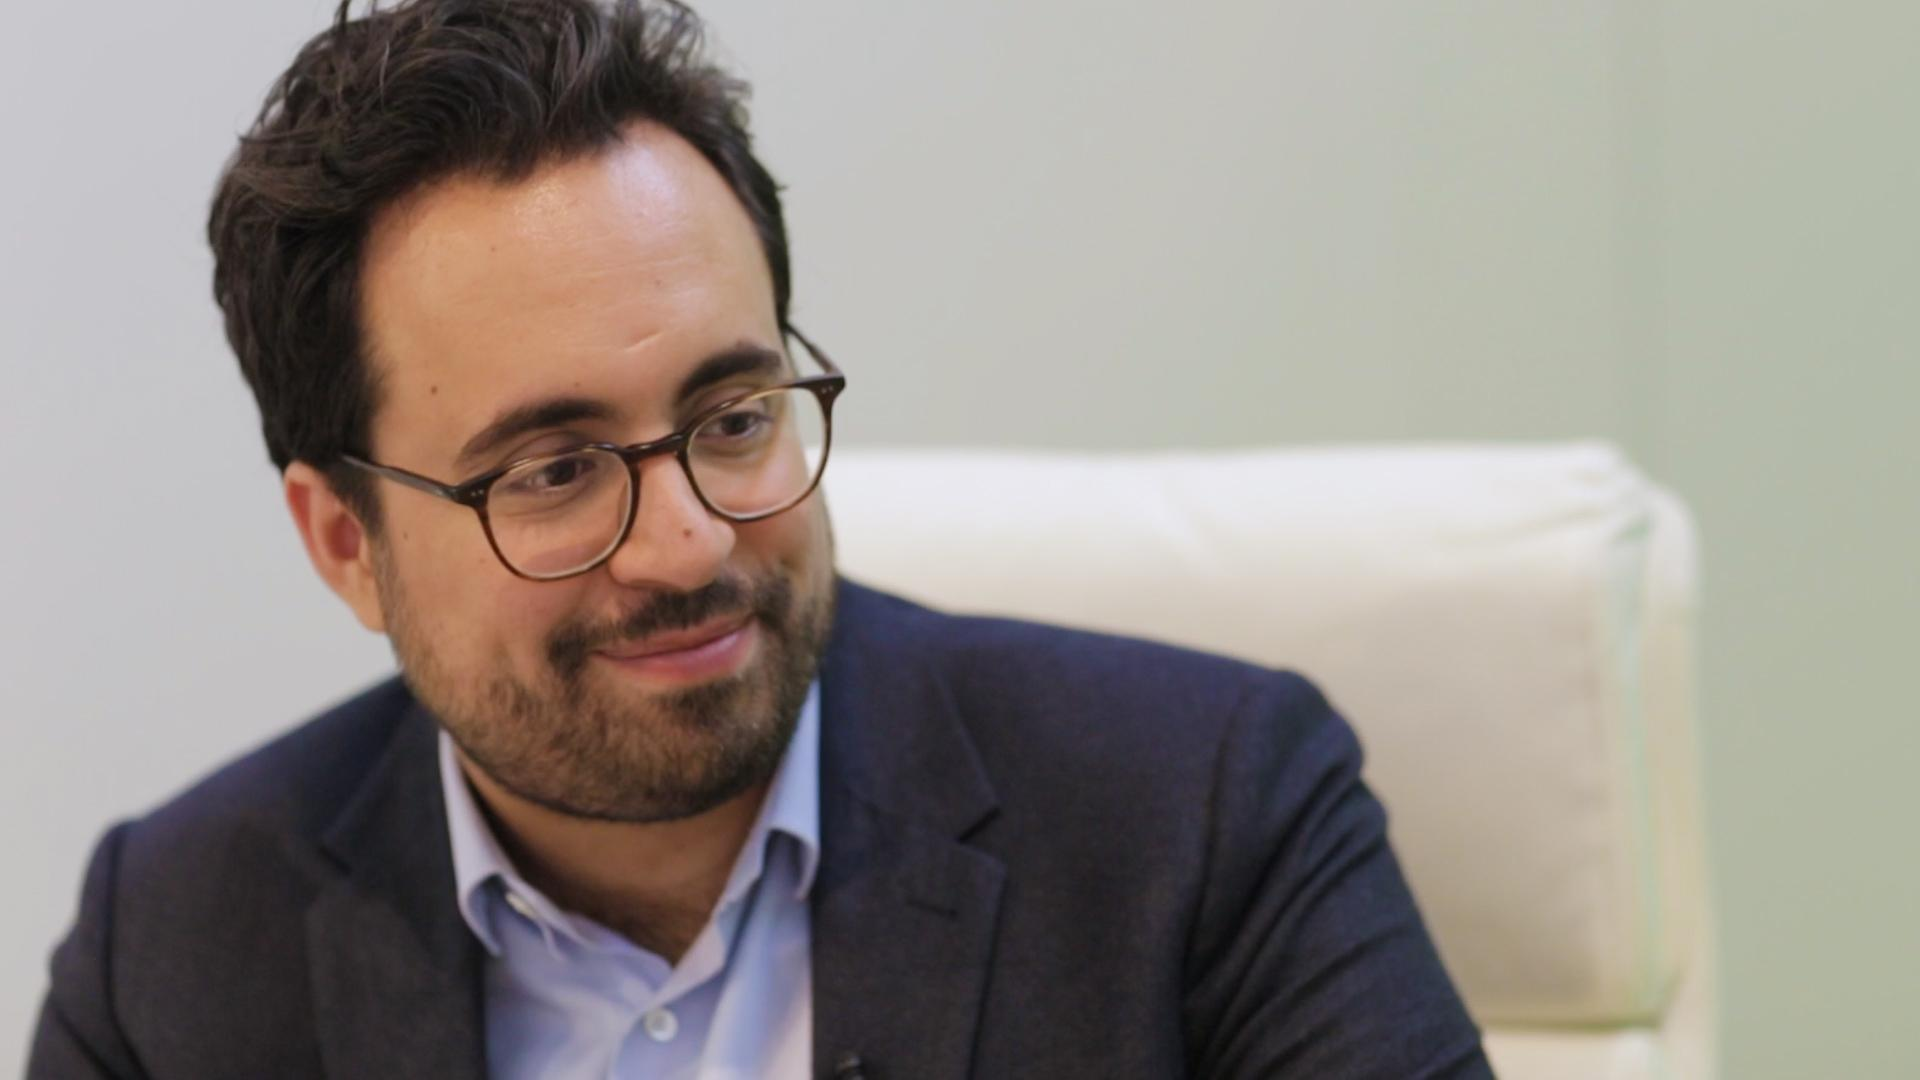 France's Digital Minister Mounir Mahjoubi on French startups